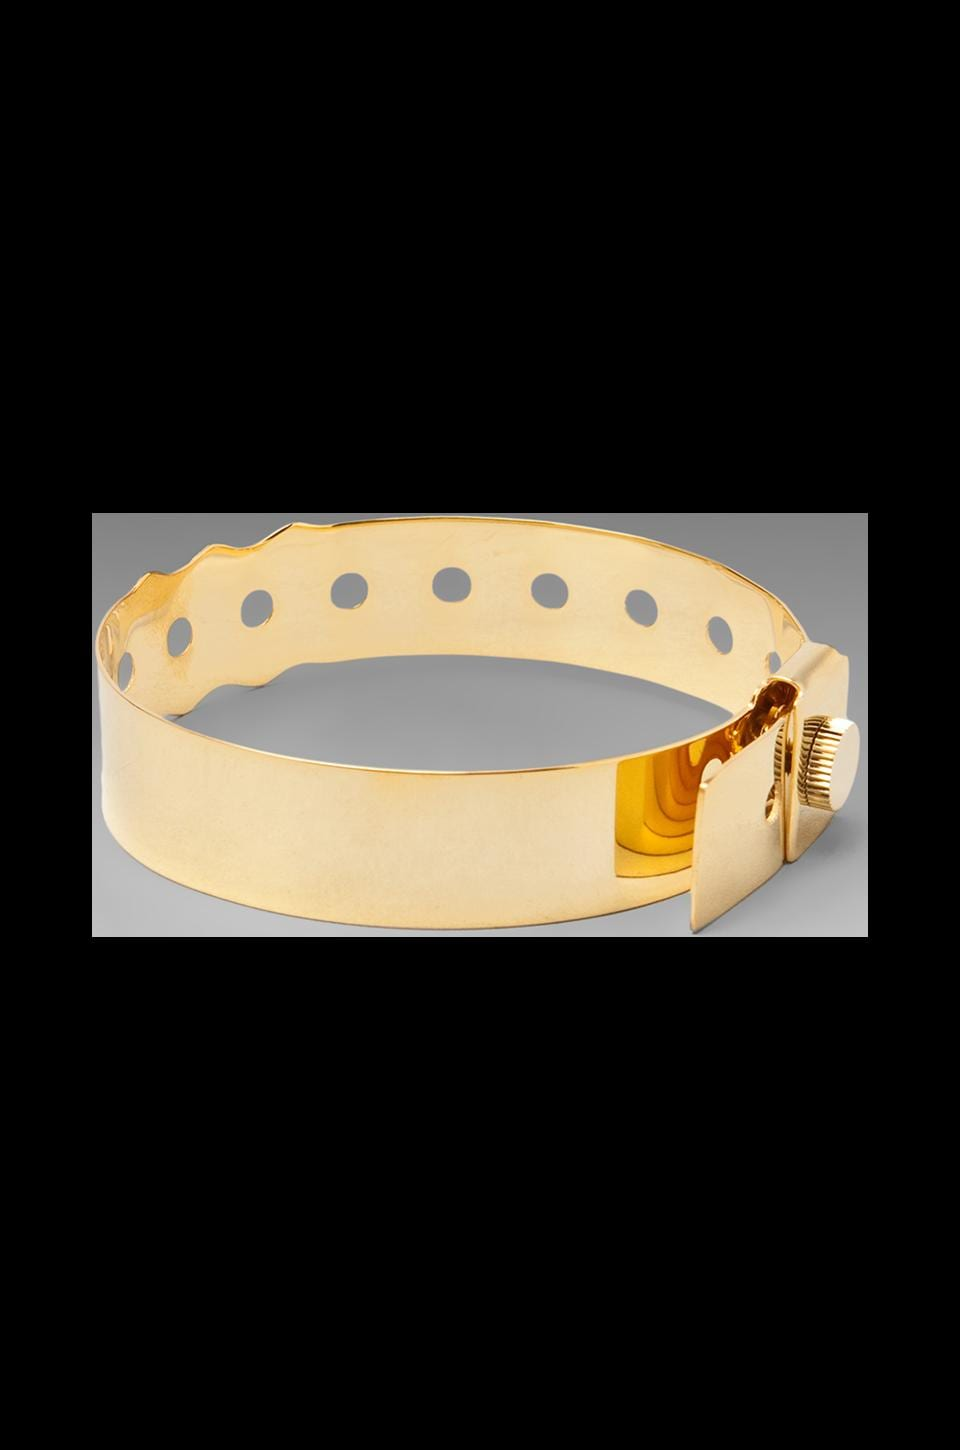 Cast of Vices 'Coming or Going' 14K Gold Plated Concert Bracelet in Gold